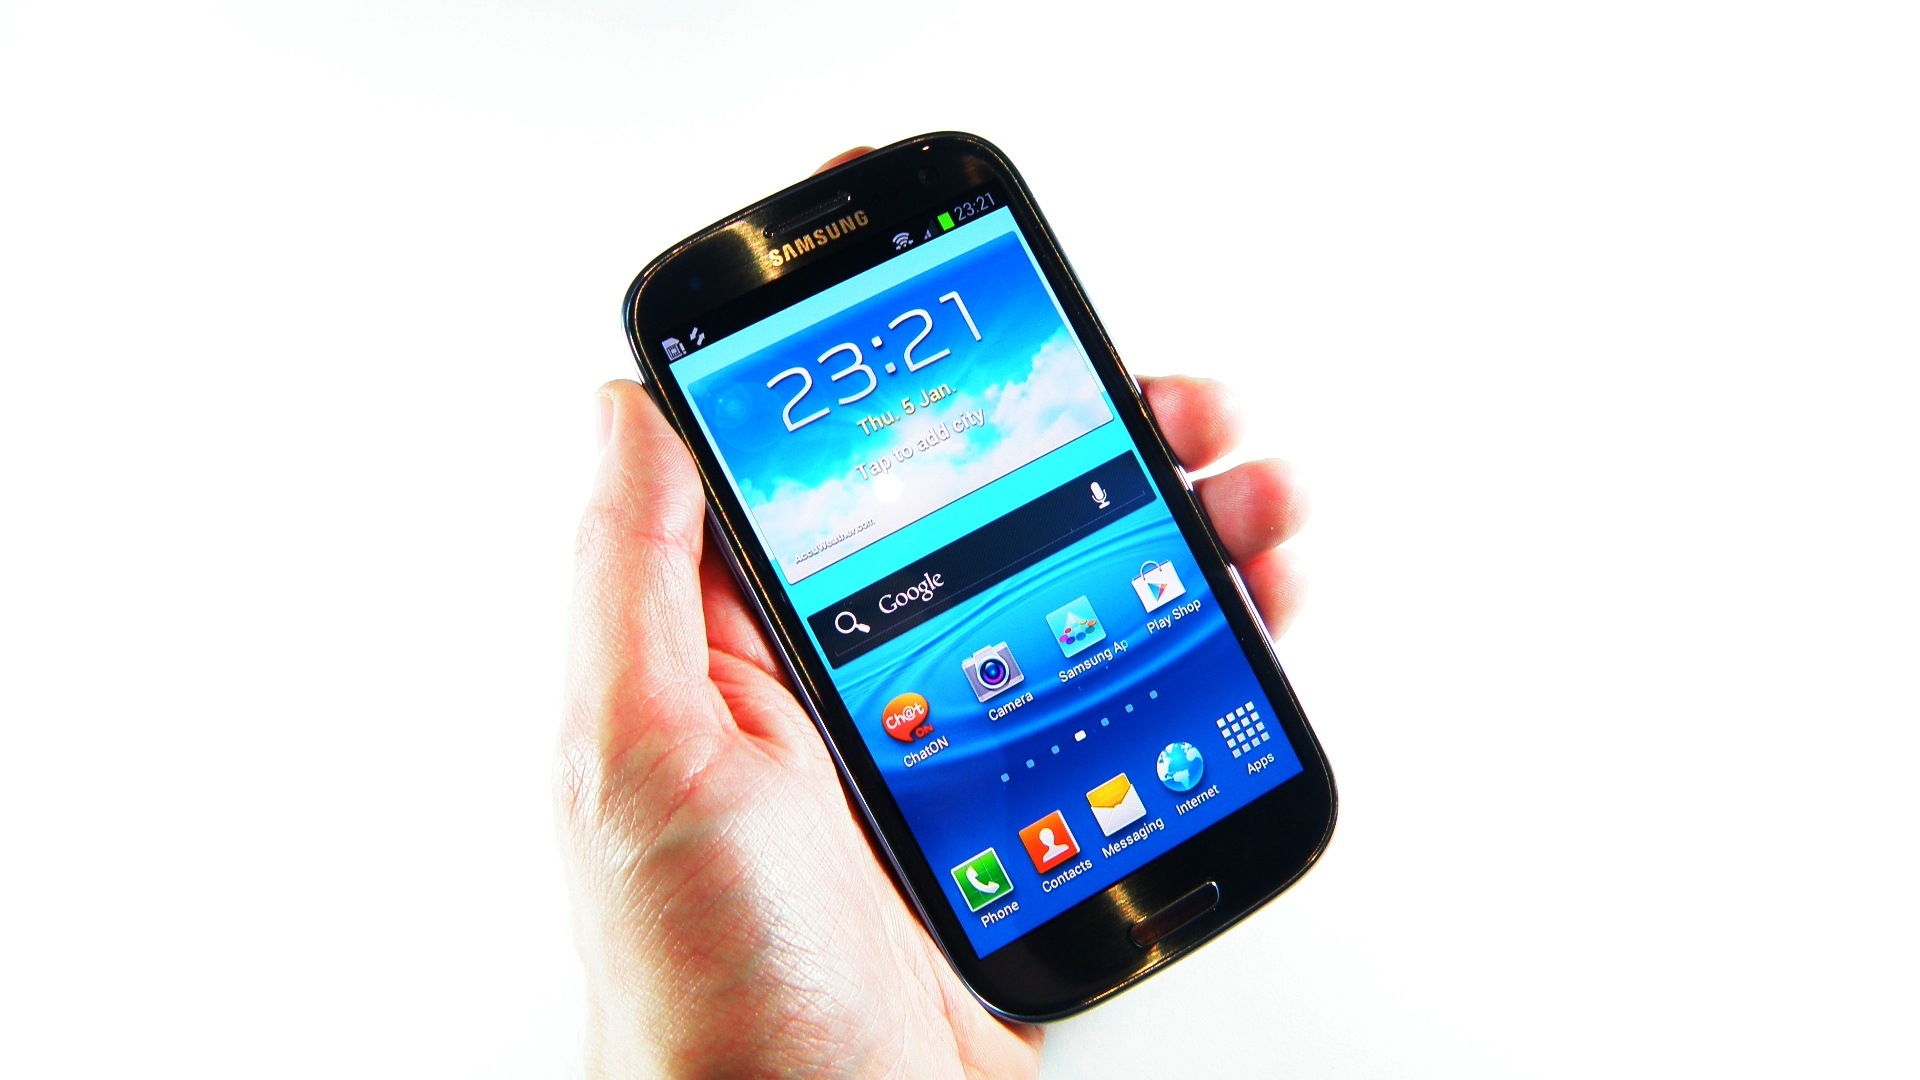 Hands-on review: Updated: Samsung Galaxy S3